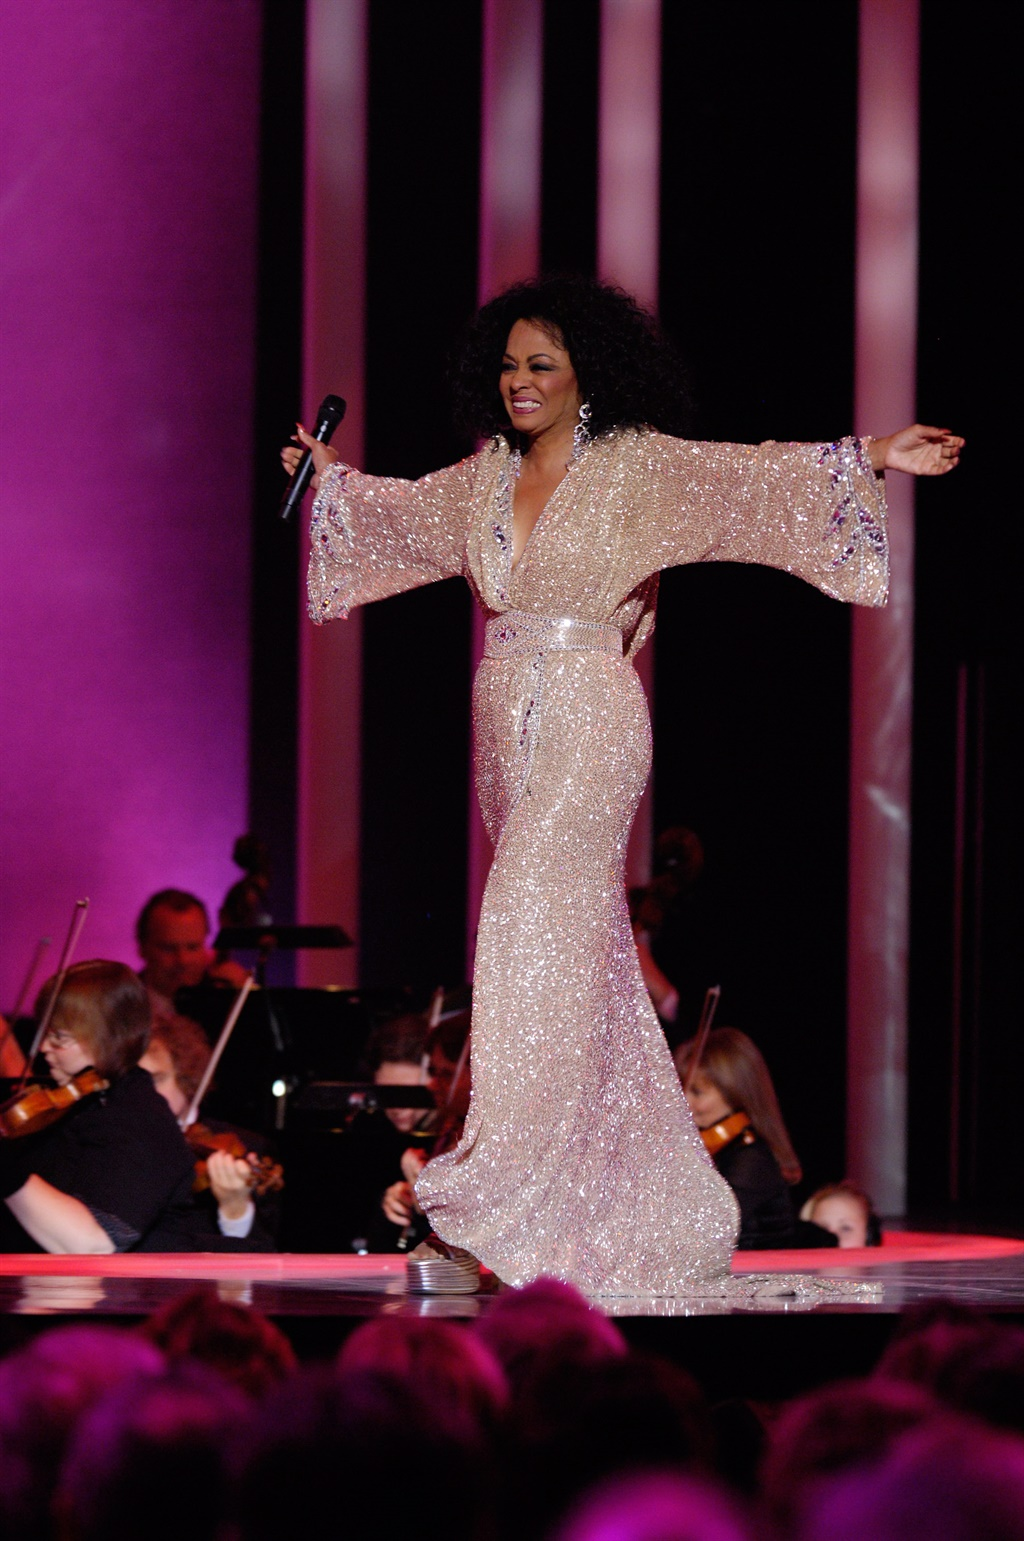 OSLO, NORWAY - DECEMBER 11: Diana Ross performs on